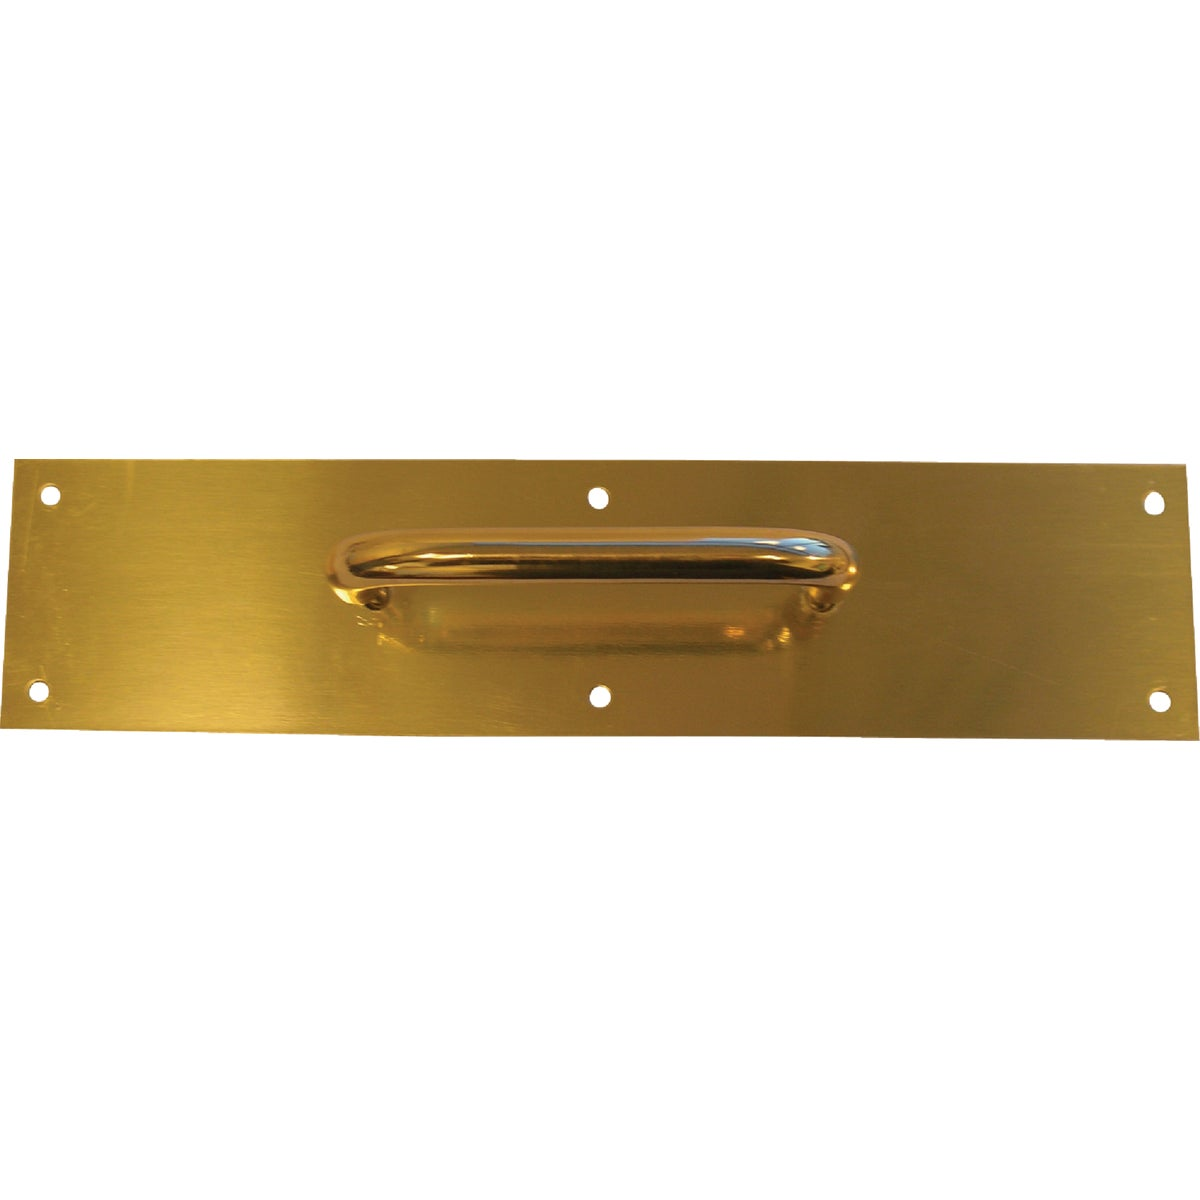 3.5X15 3 PULL PLATE - DT100068 by Tell Mfg Inc